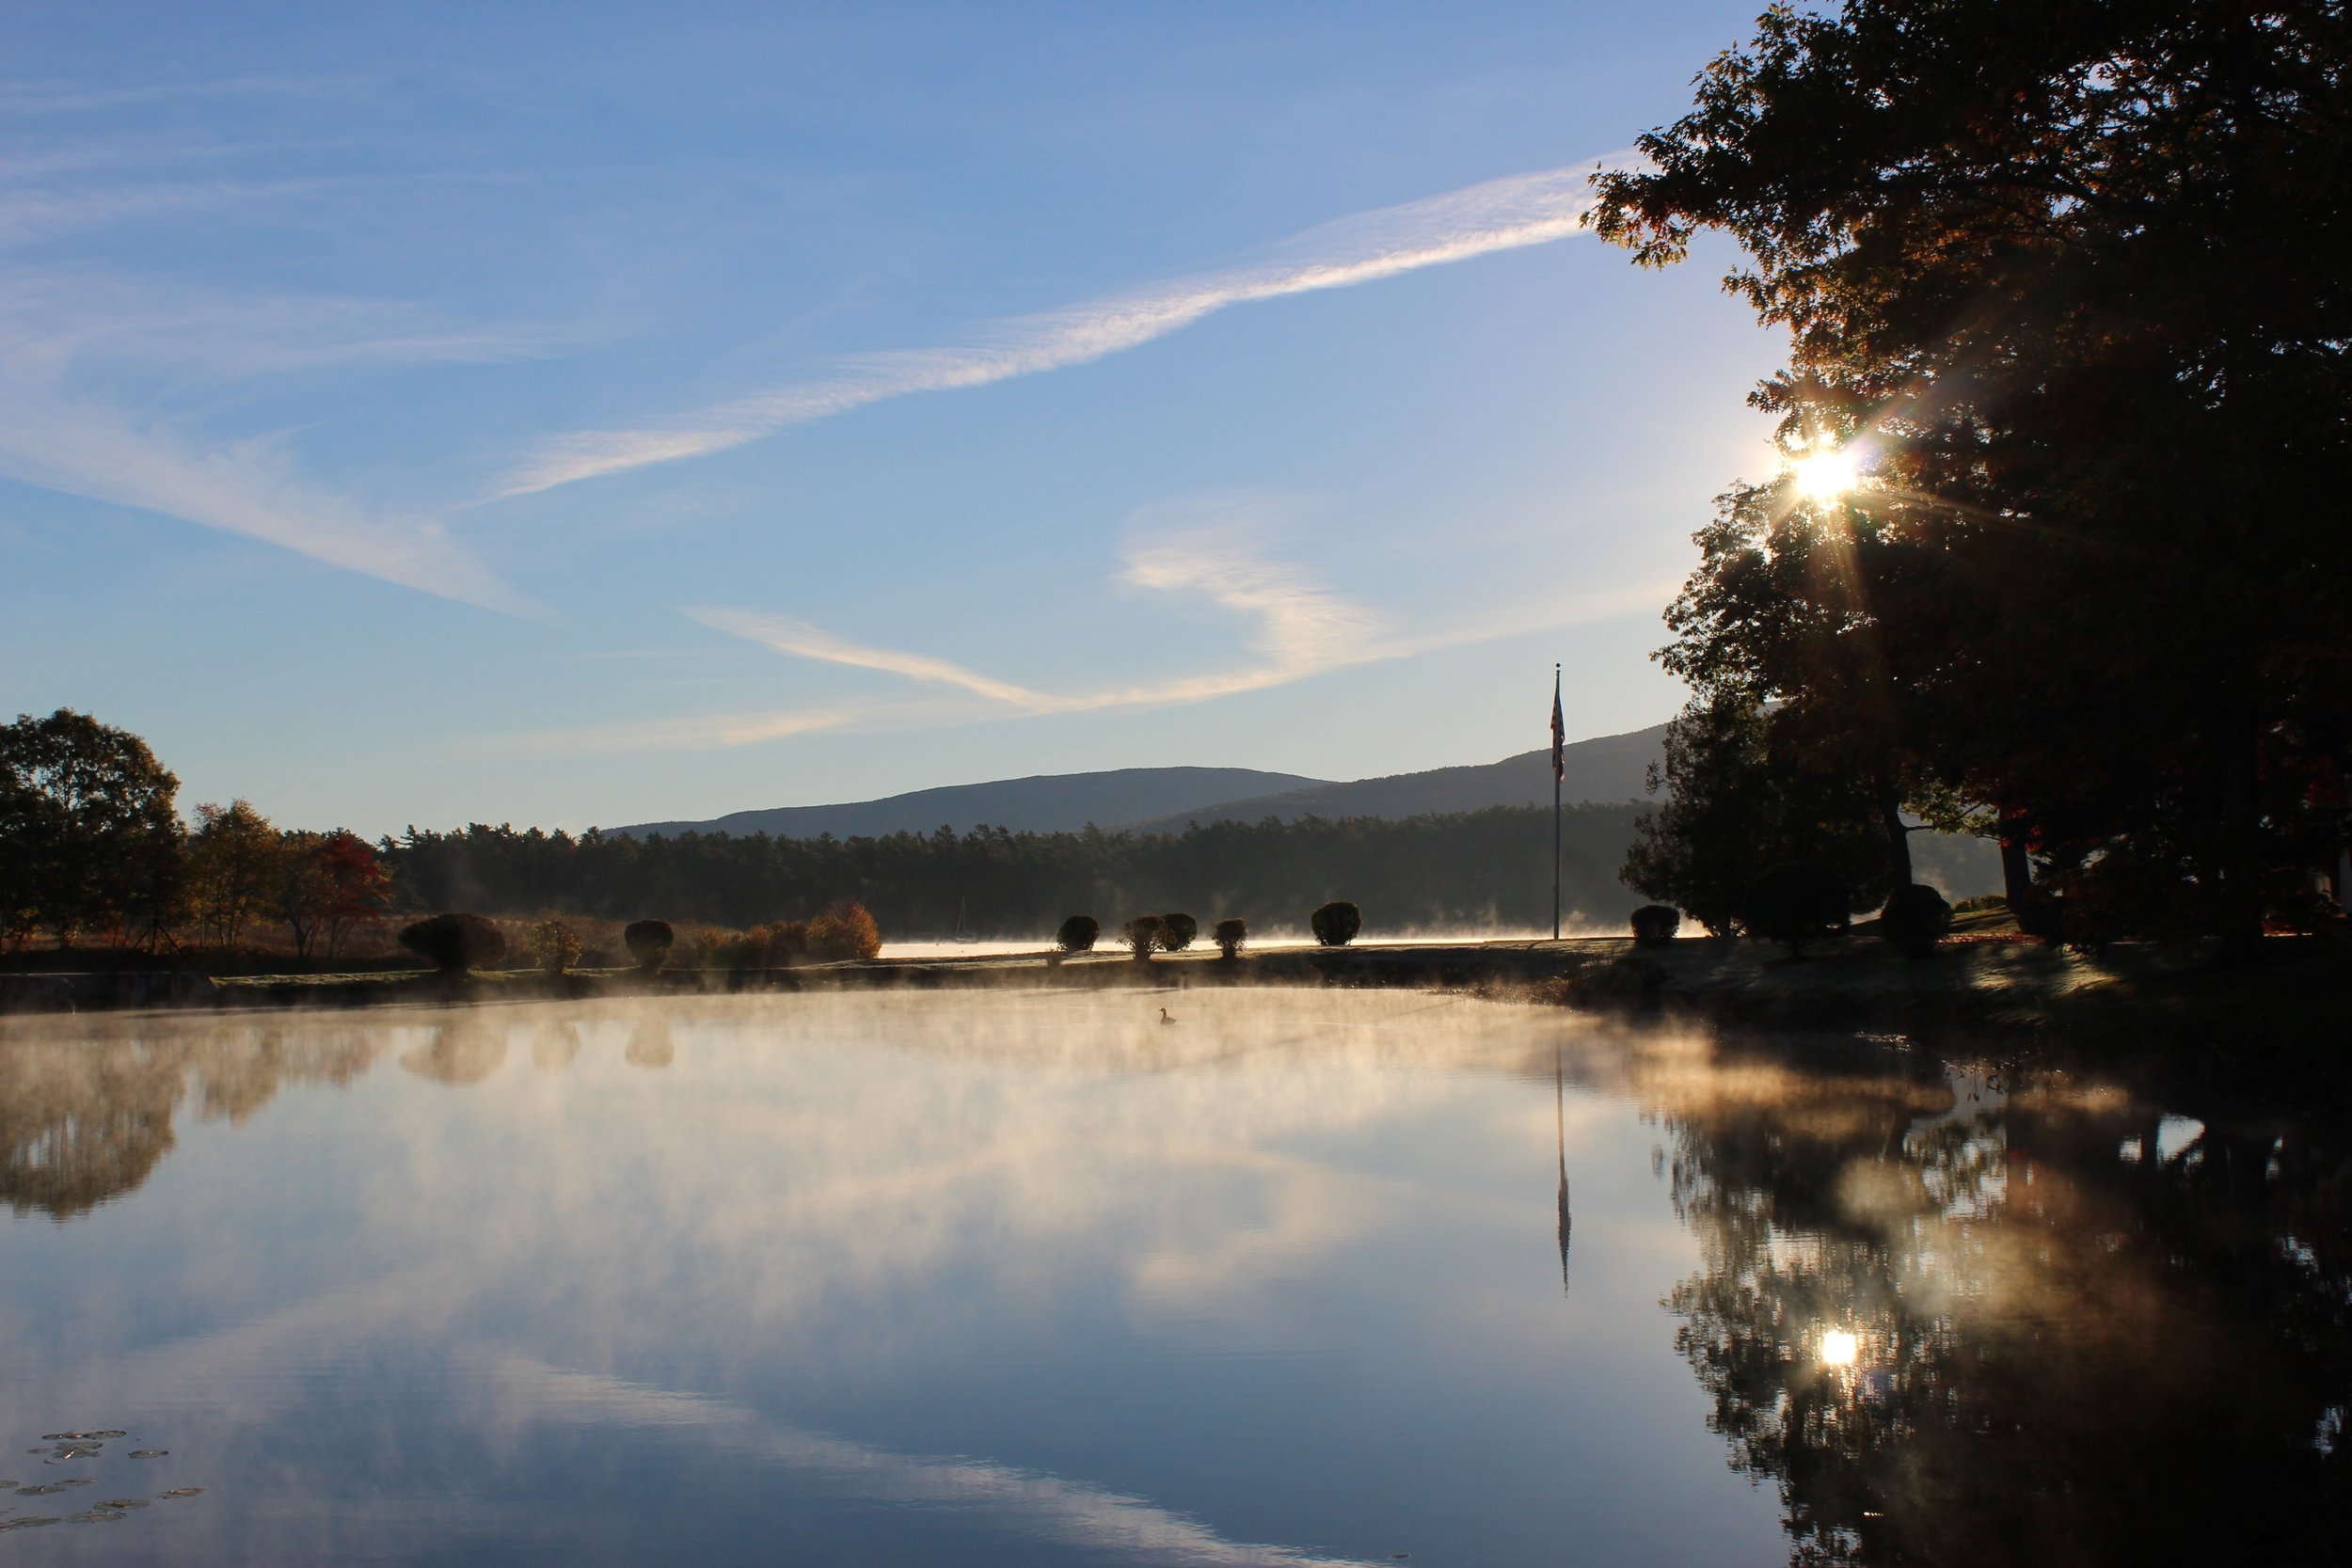 A beautiful scene that morning on our way back from the sunrise viewing. Maine was breathtaking!